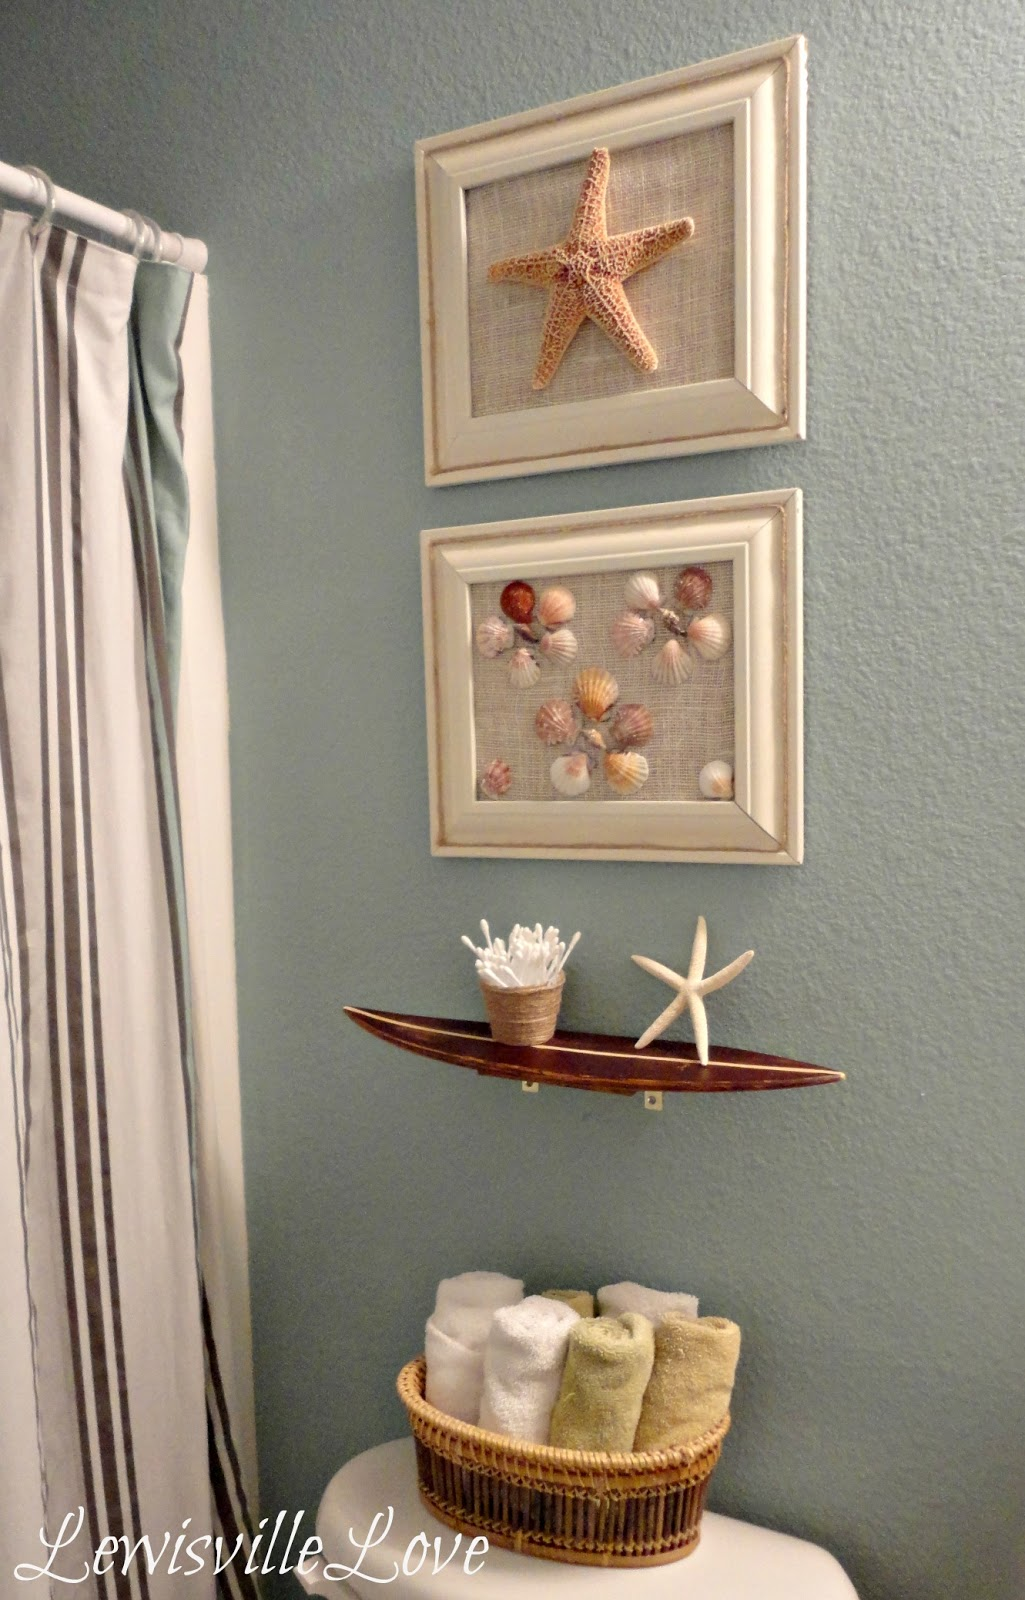 Lewisville love beach theme bathroom reveal for Beach decor bathroom ideas